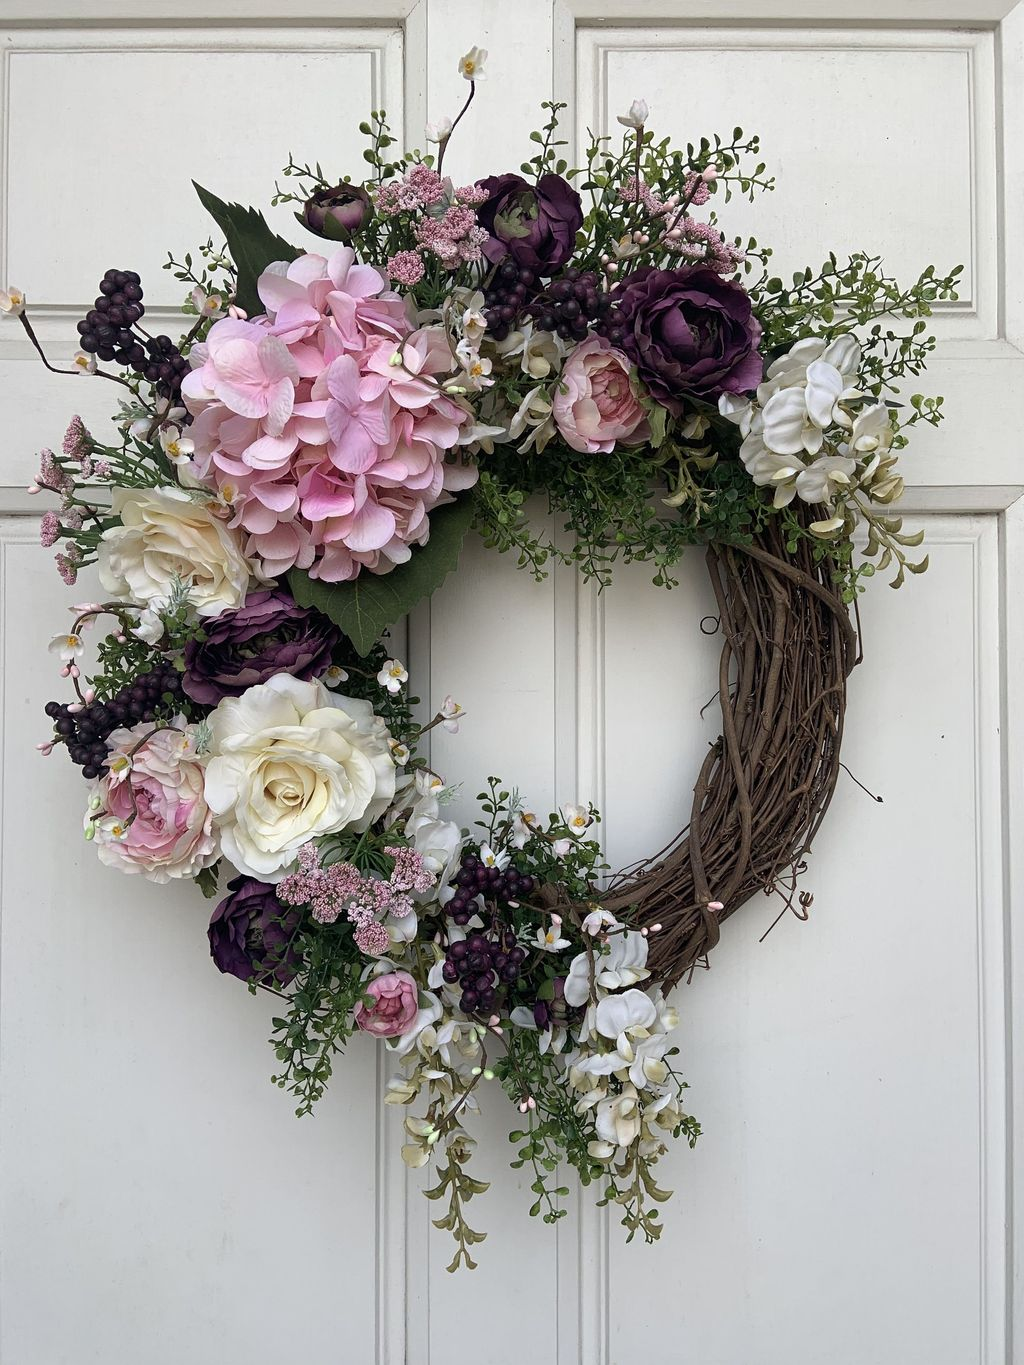 Inspiring Summer Wreath Design Ideas You Should Copy 31